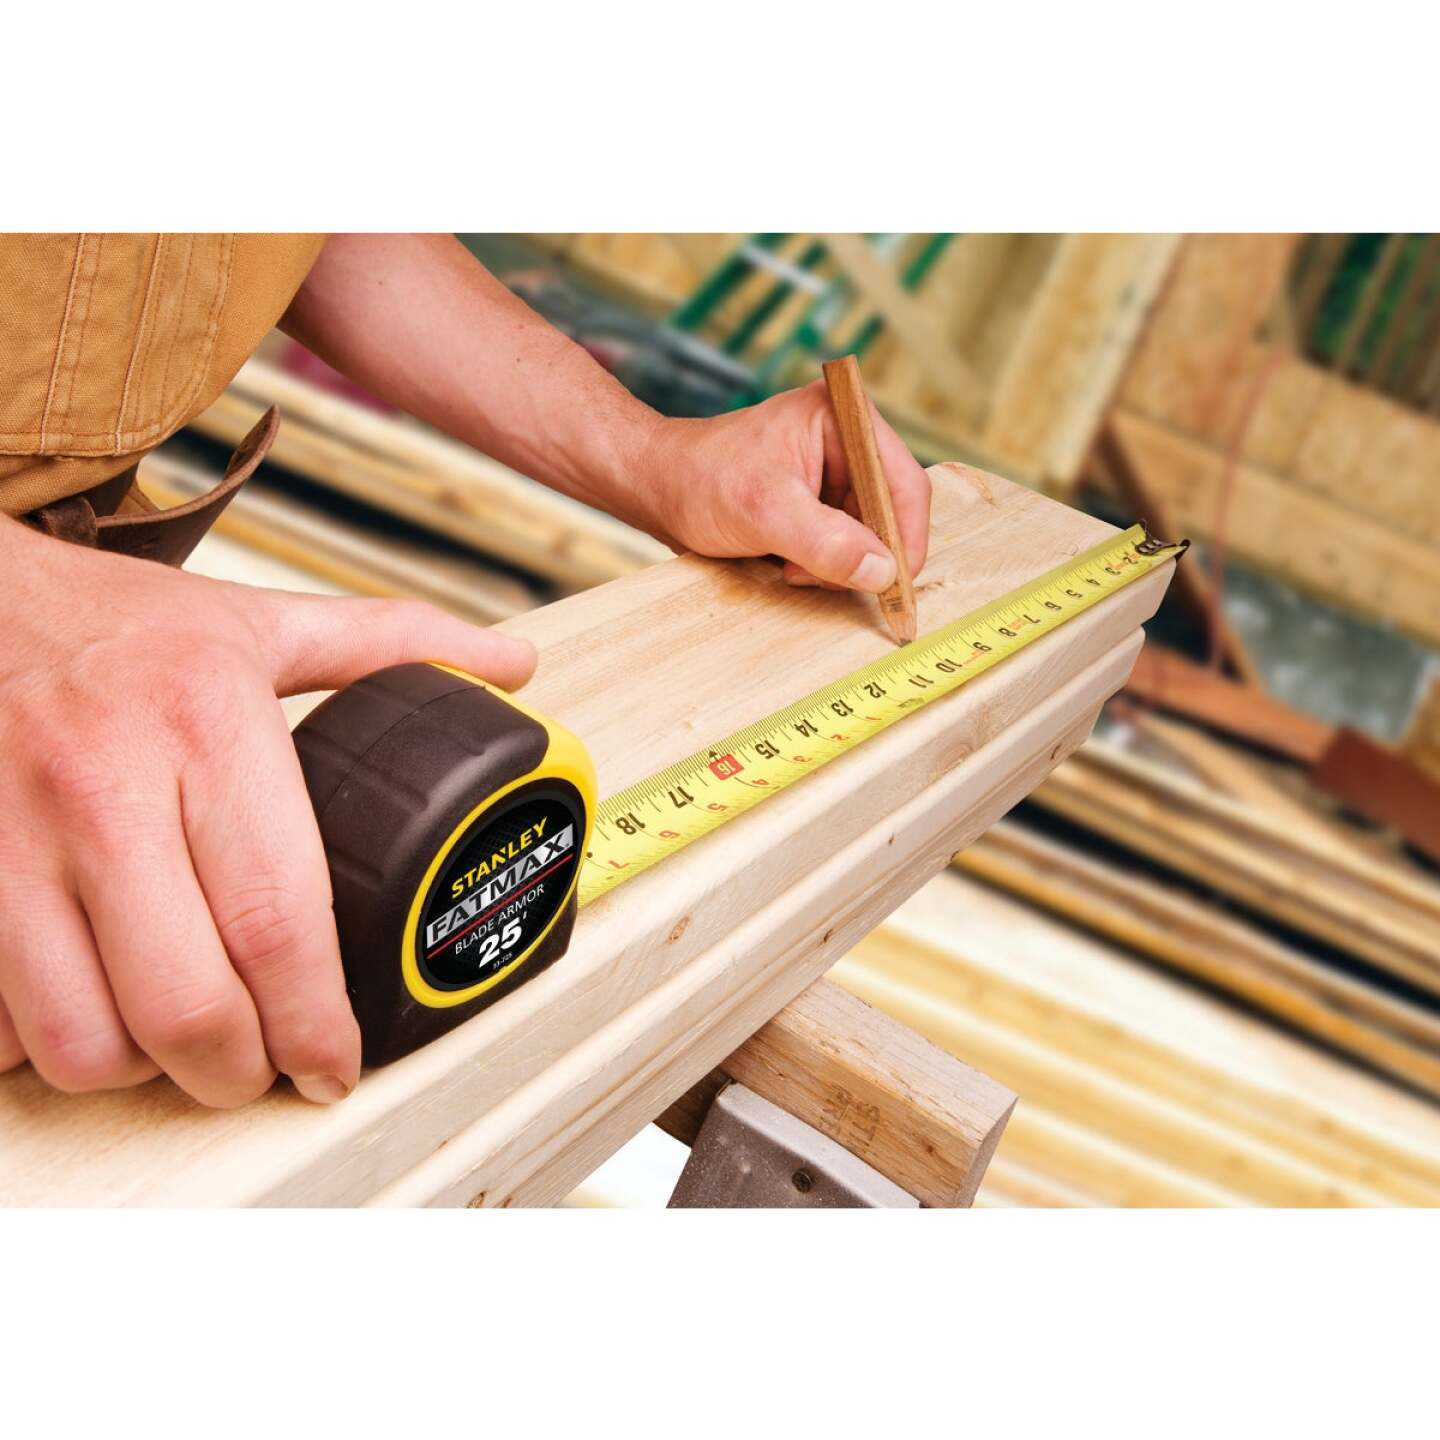 Stanley FatMax 25 Ft. Classic Tape Measure with 11 Ft. Standout Image 2